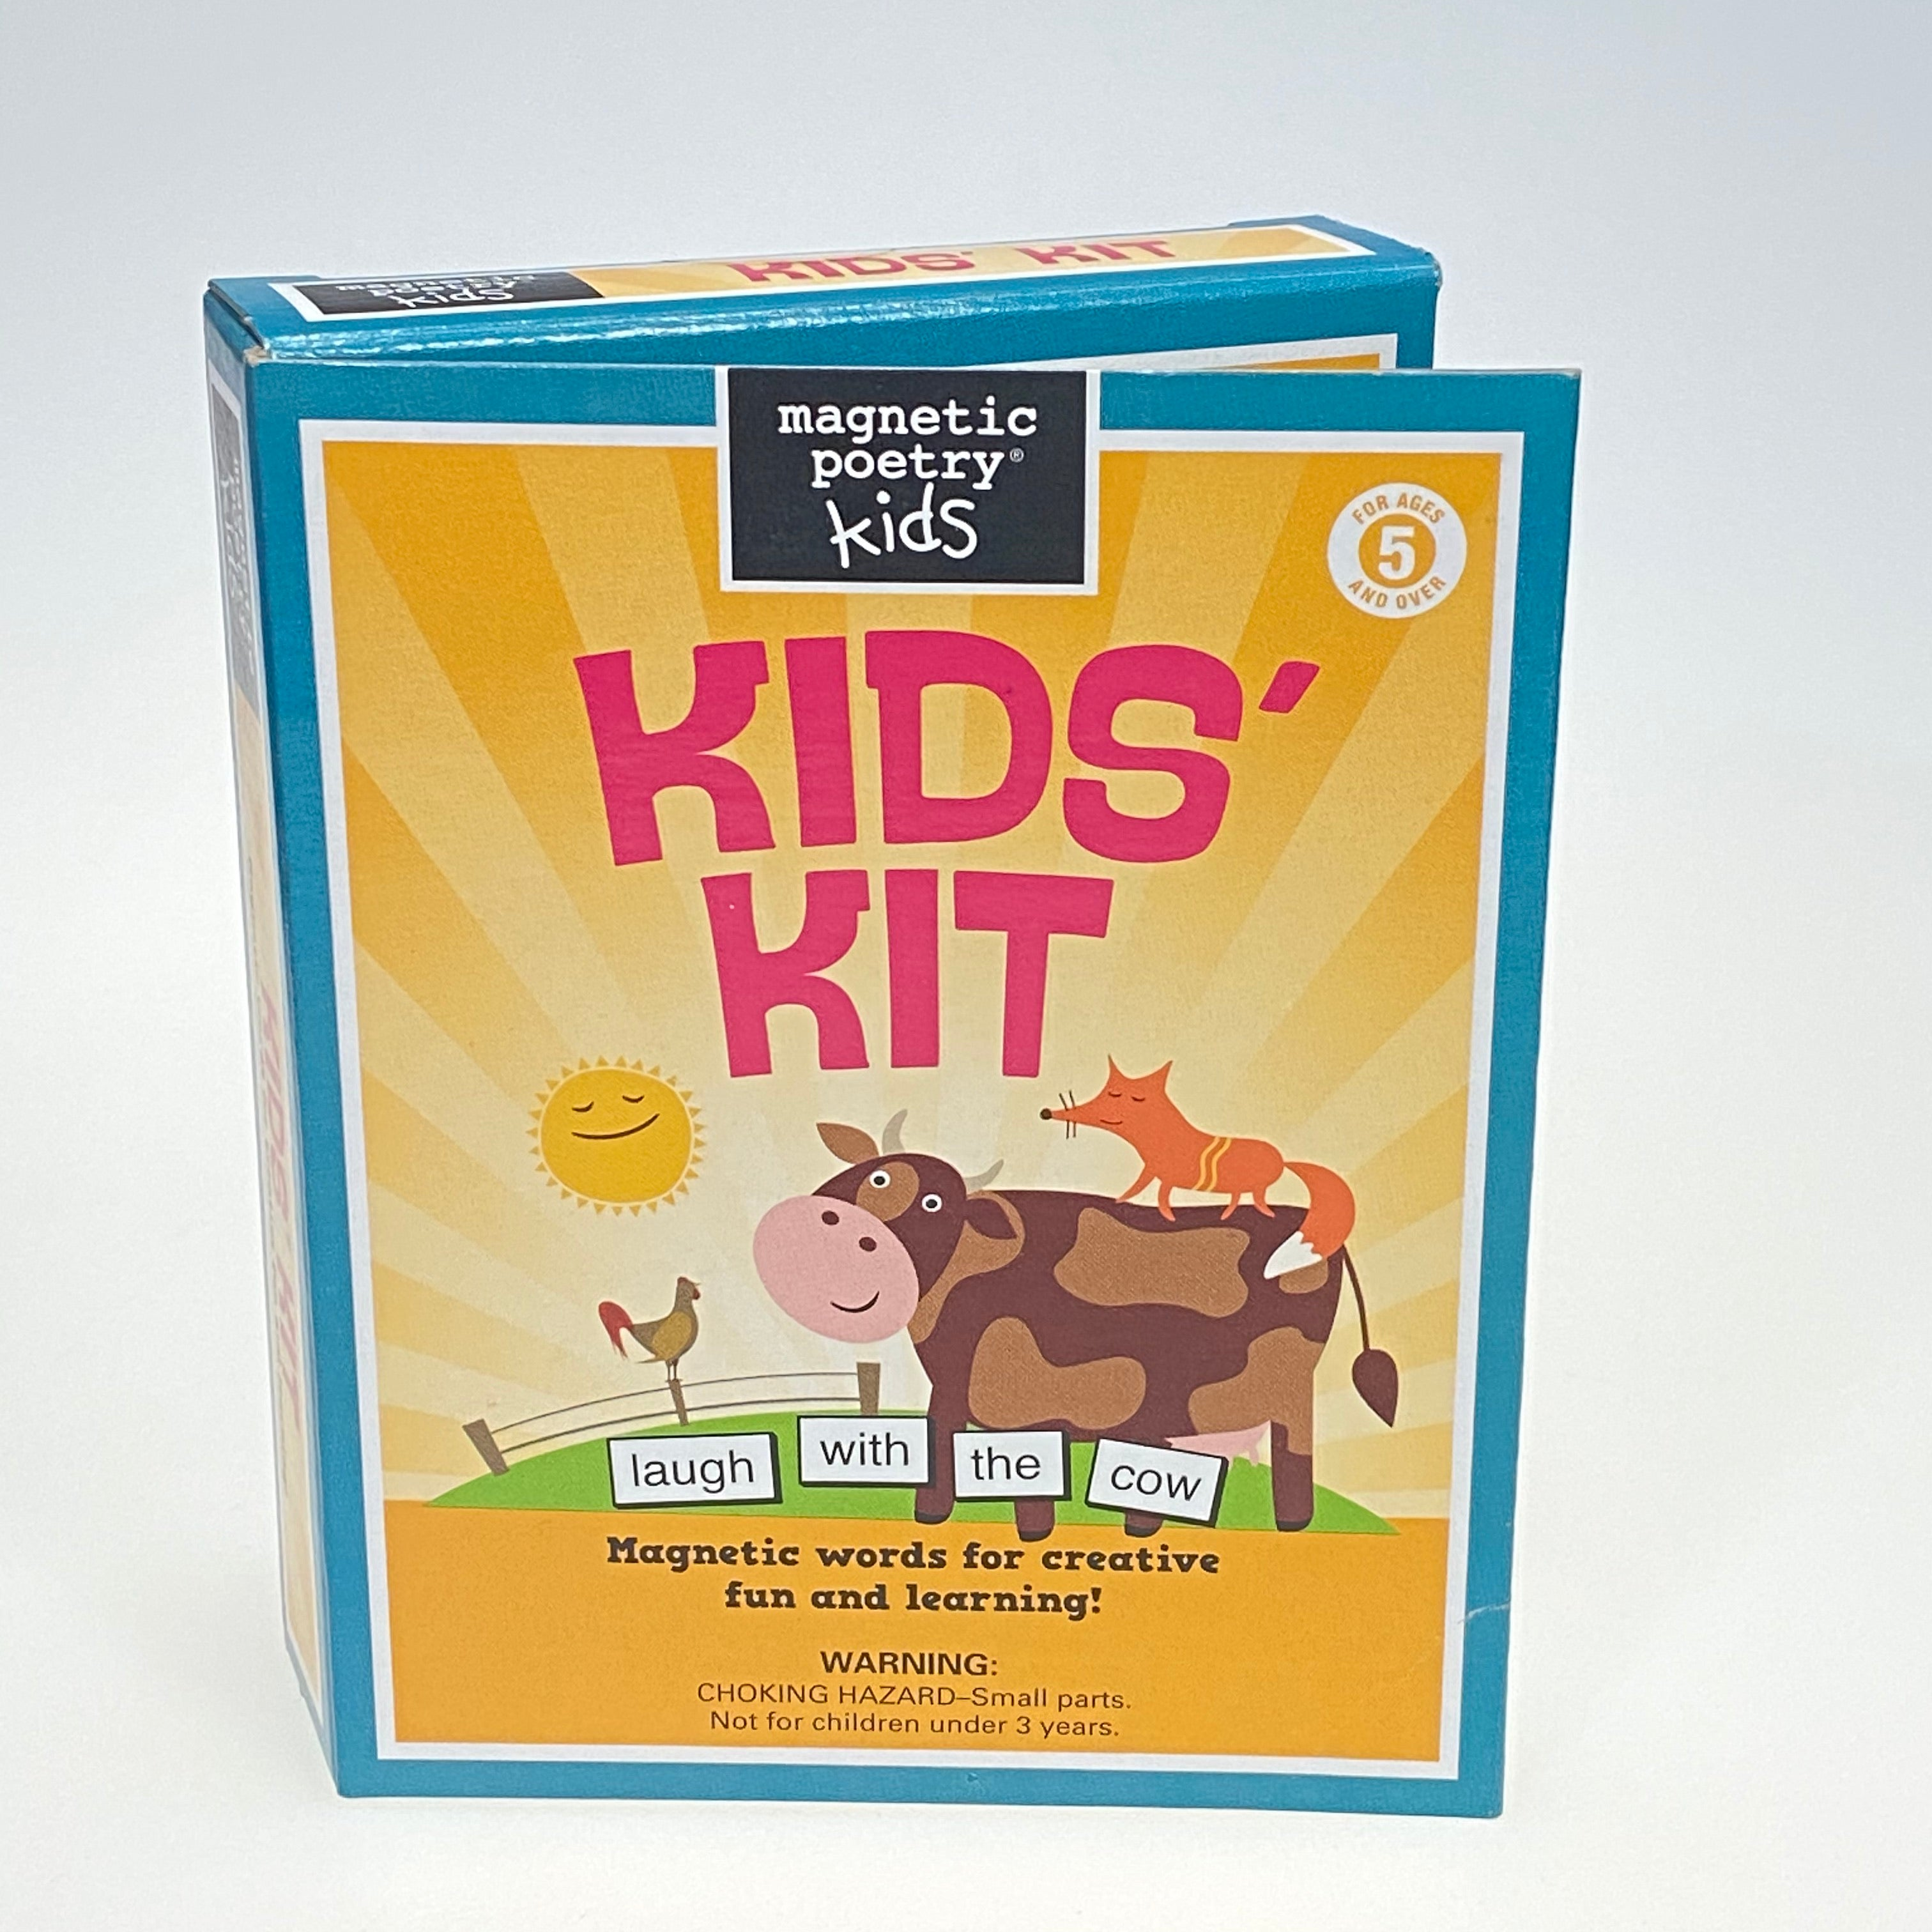 Magnetic Poetry Kids Kit